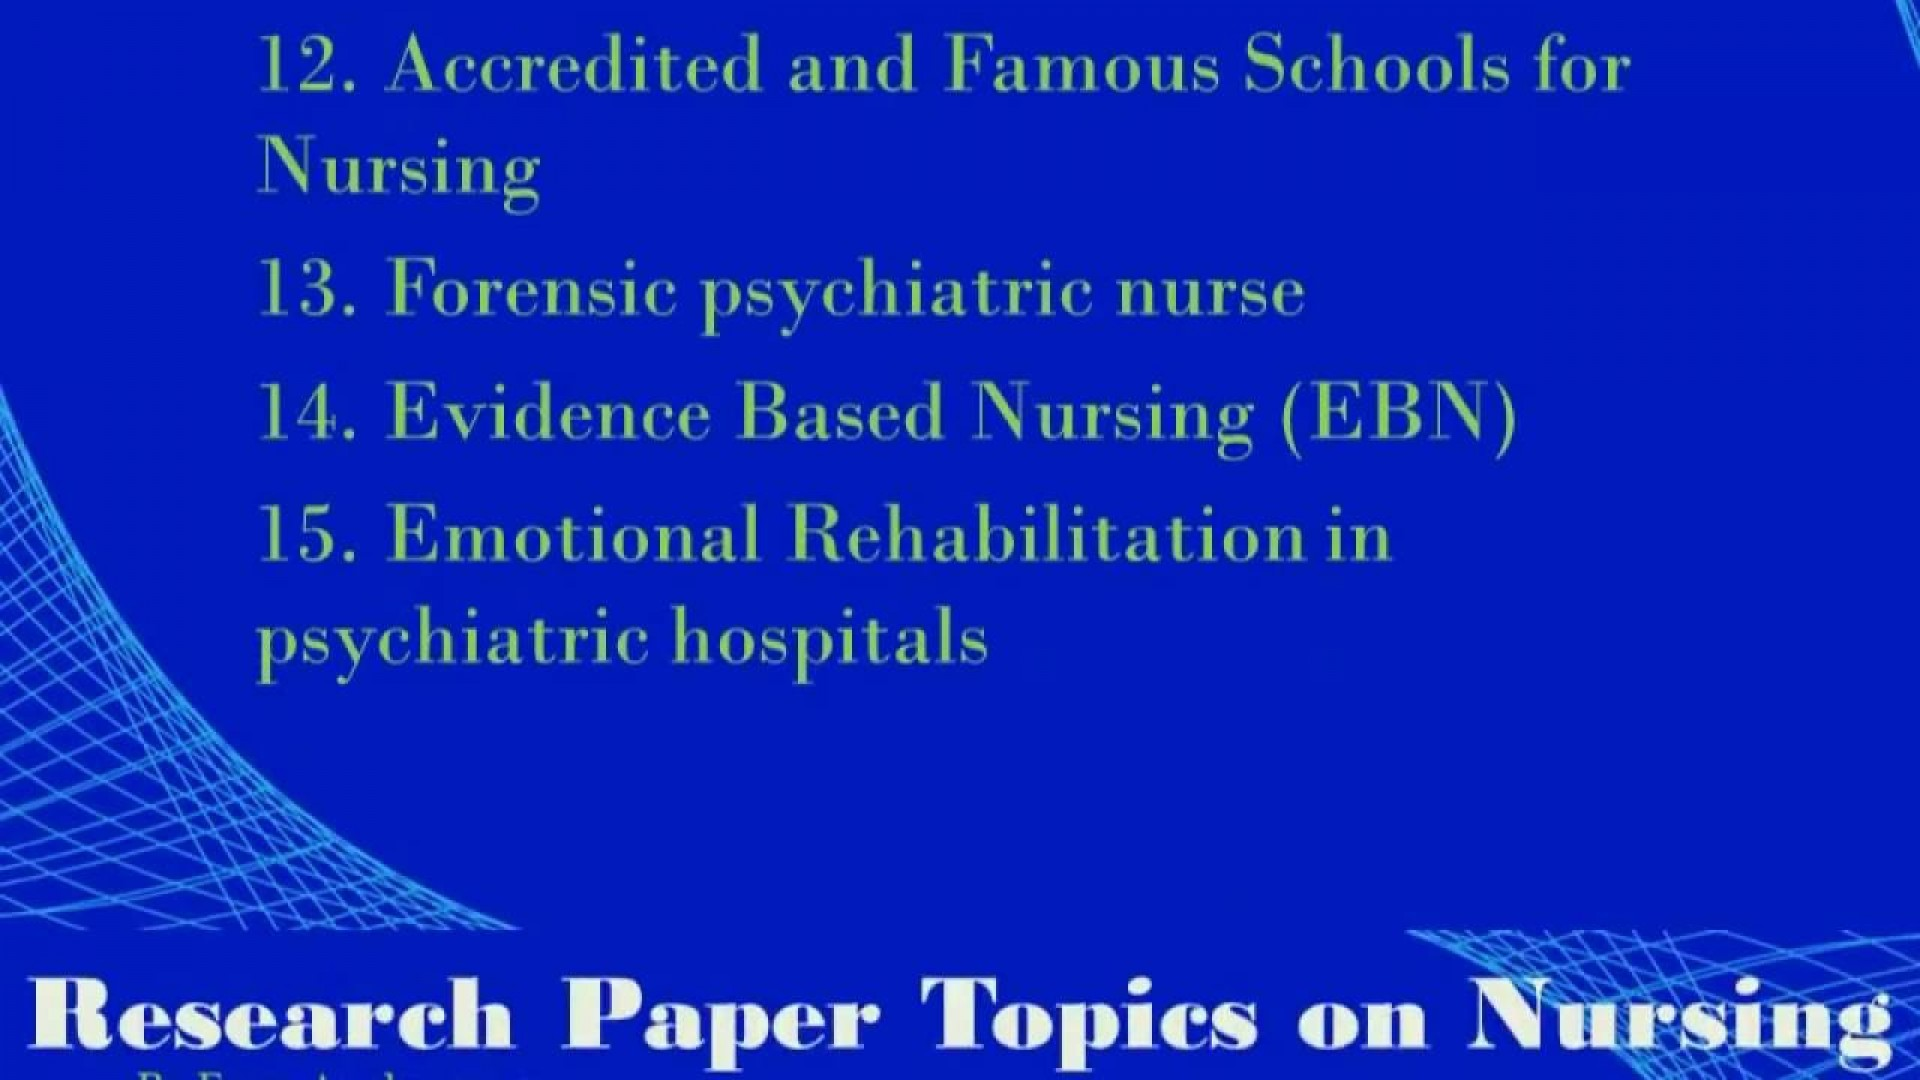 015 Research Paper About Nursing Unforgettable Topics On Home Abuse And Neglect Shortage 1920